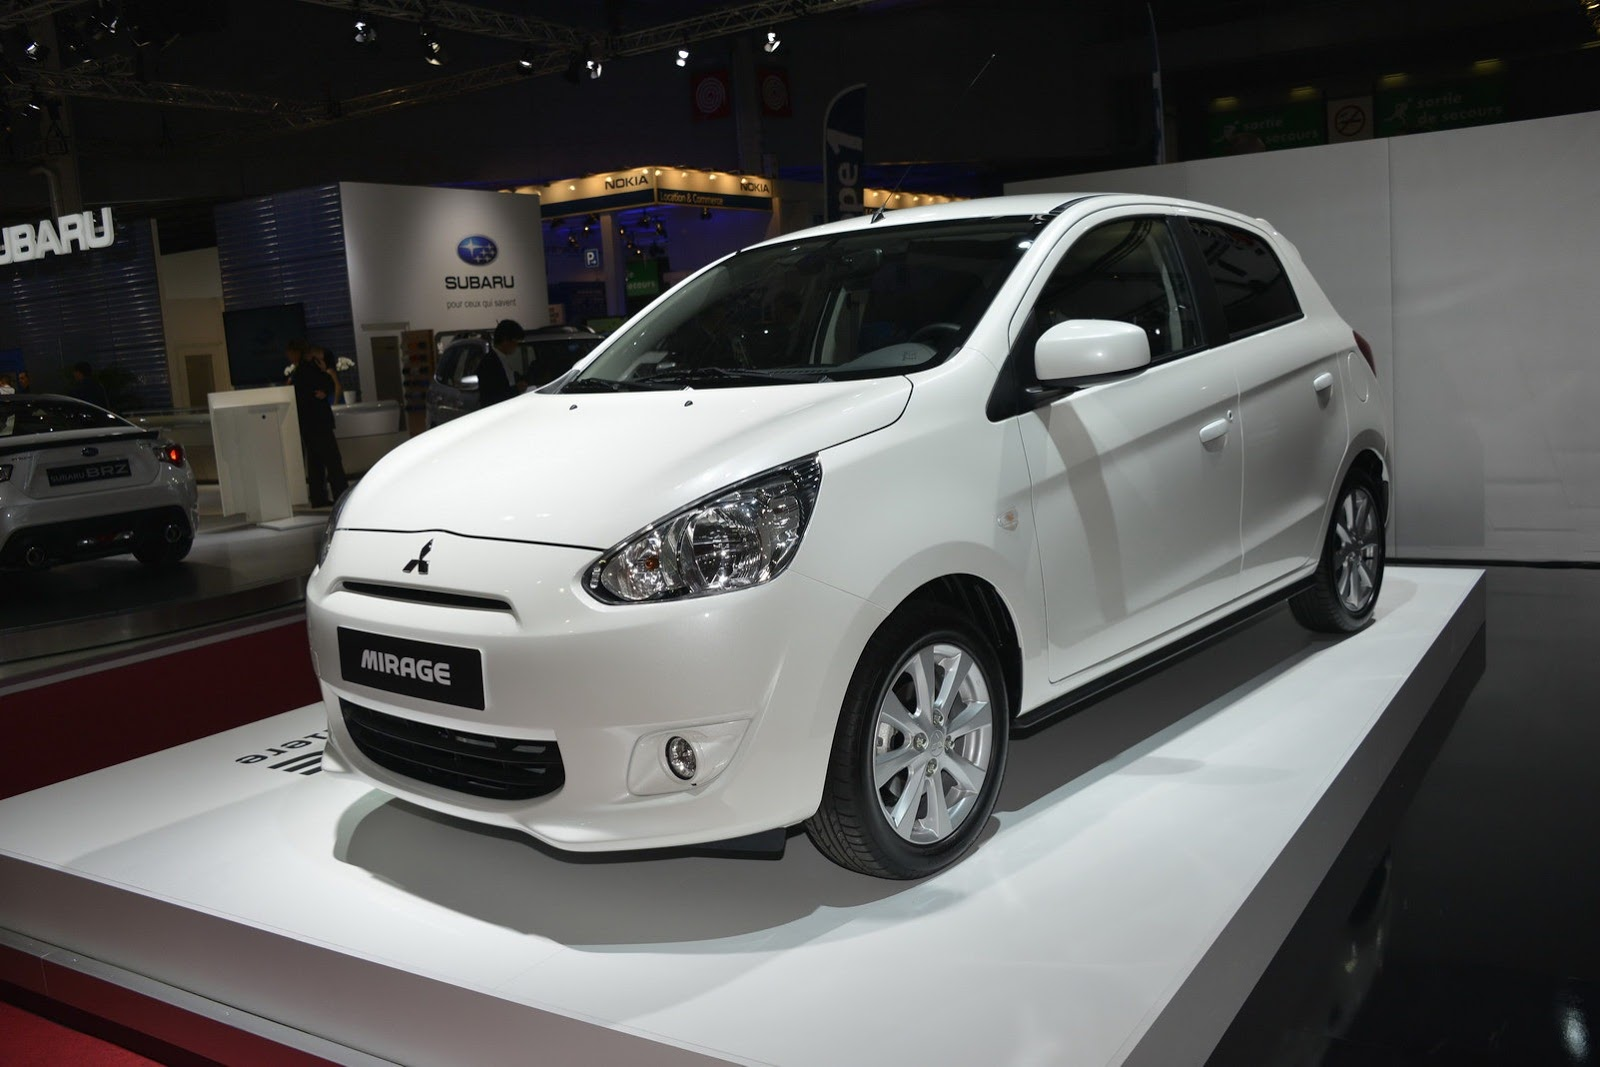 Mitsubishi introduces Mirage compact to the US market